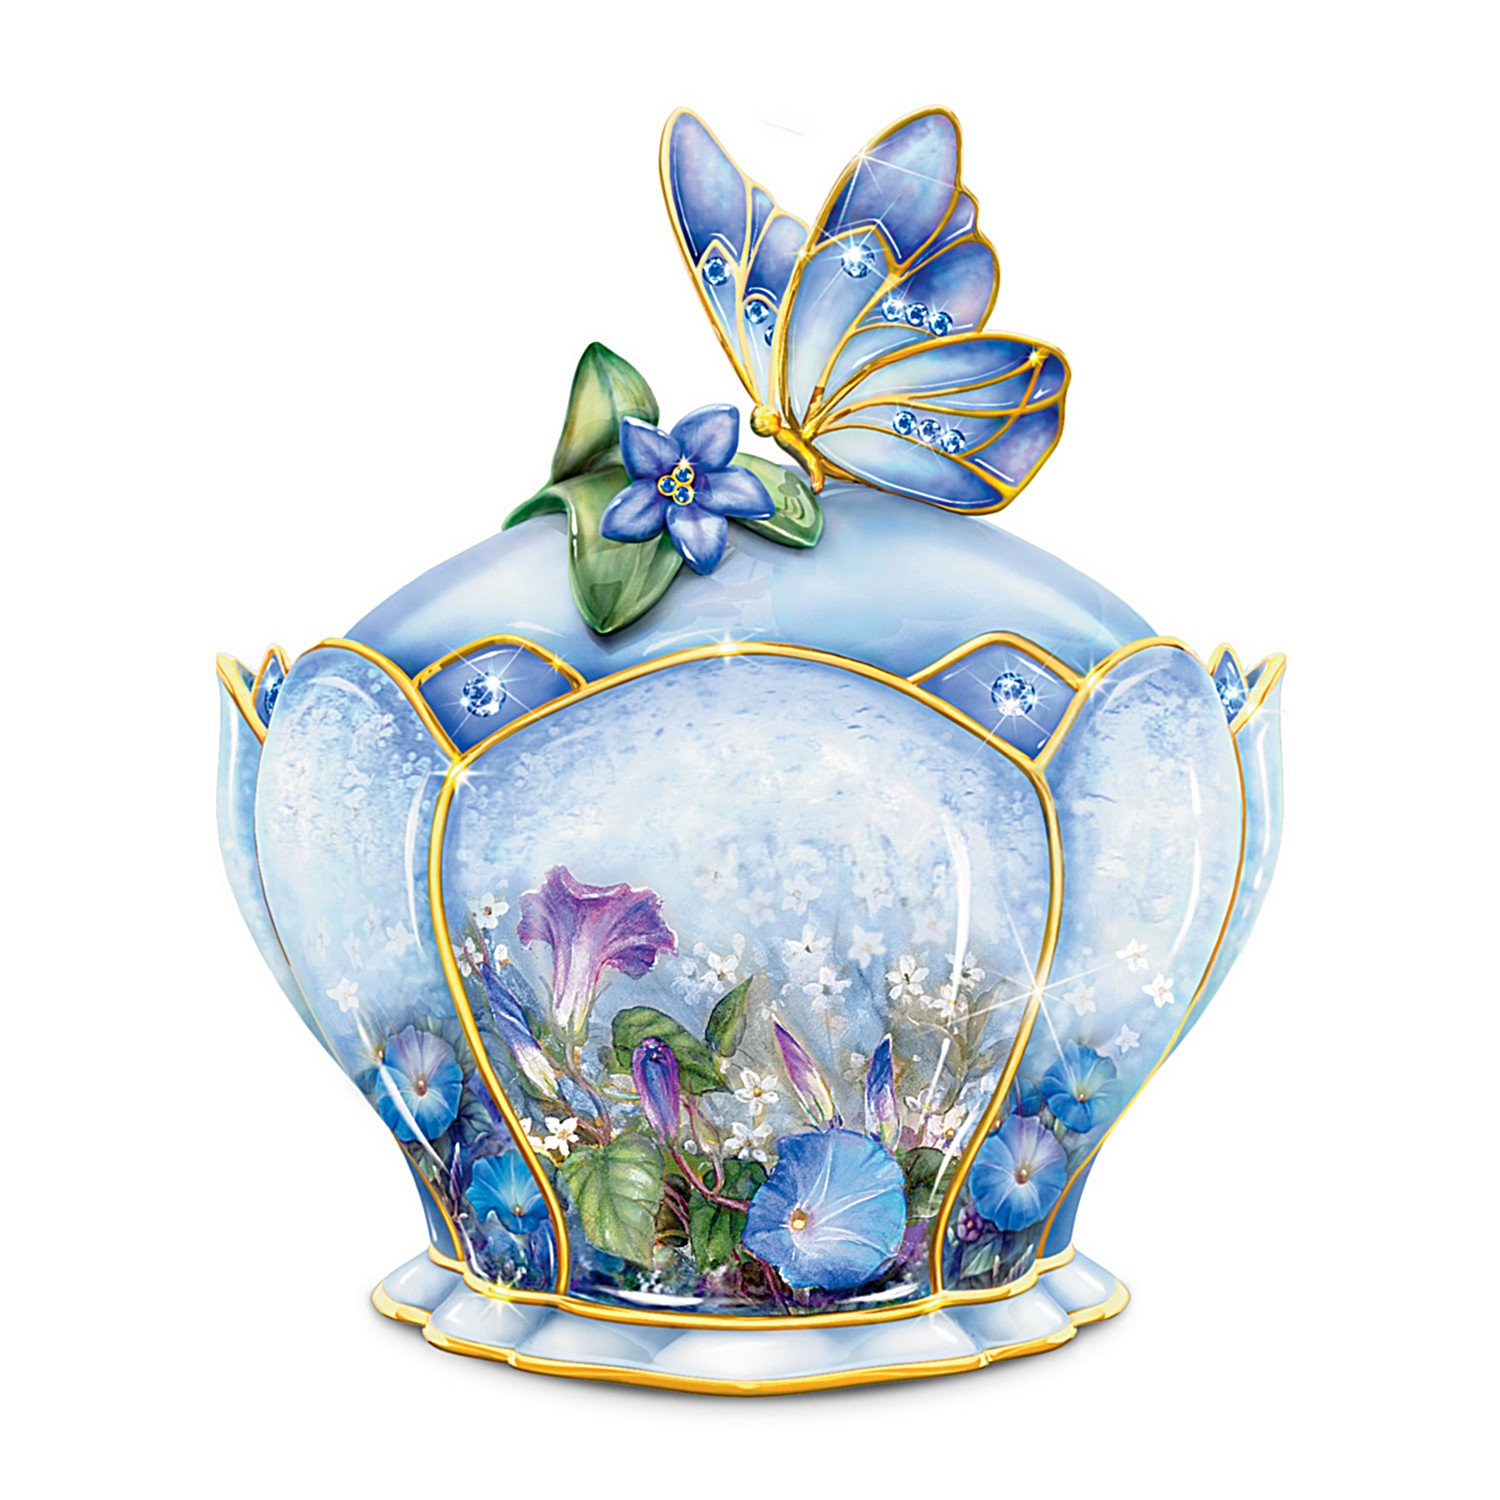 Butterfly Floral Art Heirloom Porcelain Music Box: Whispering Wings   B007SP3N36